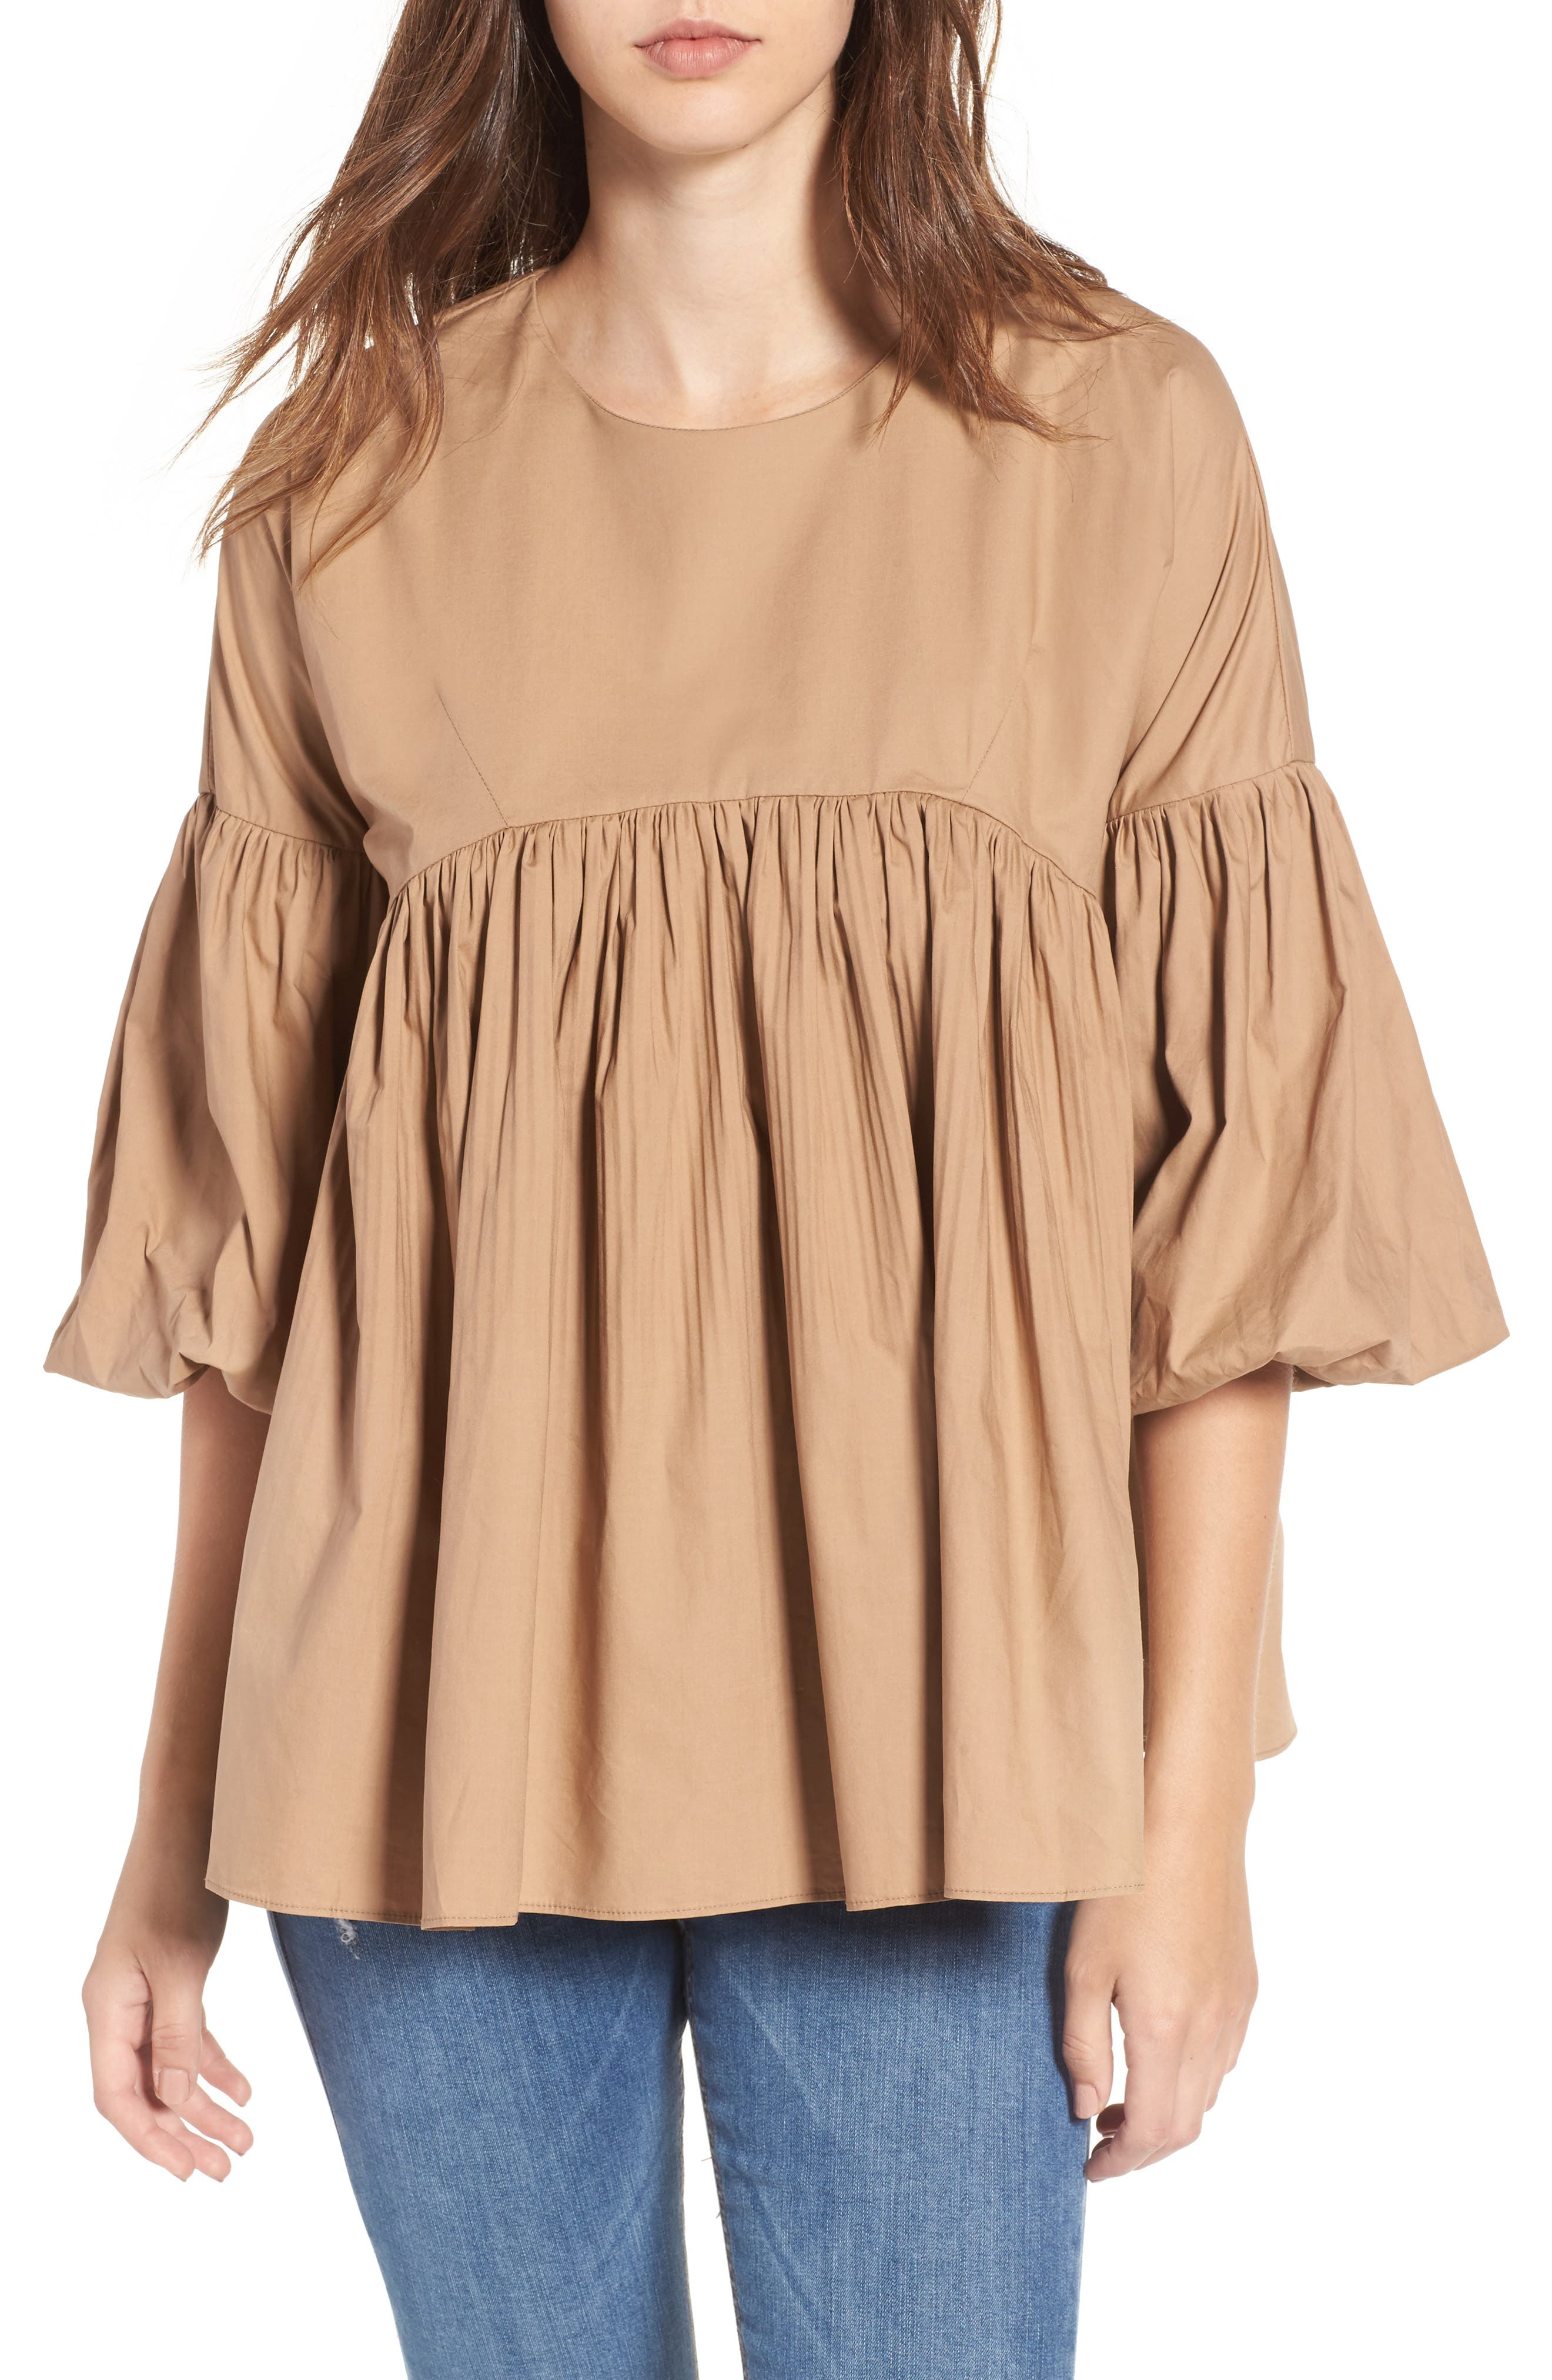 Main Image - CODEXMODE Pleated Swing Top